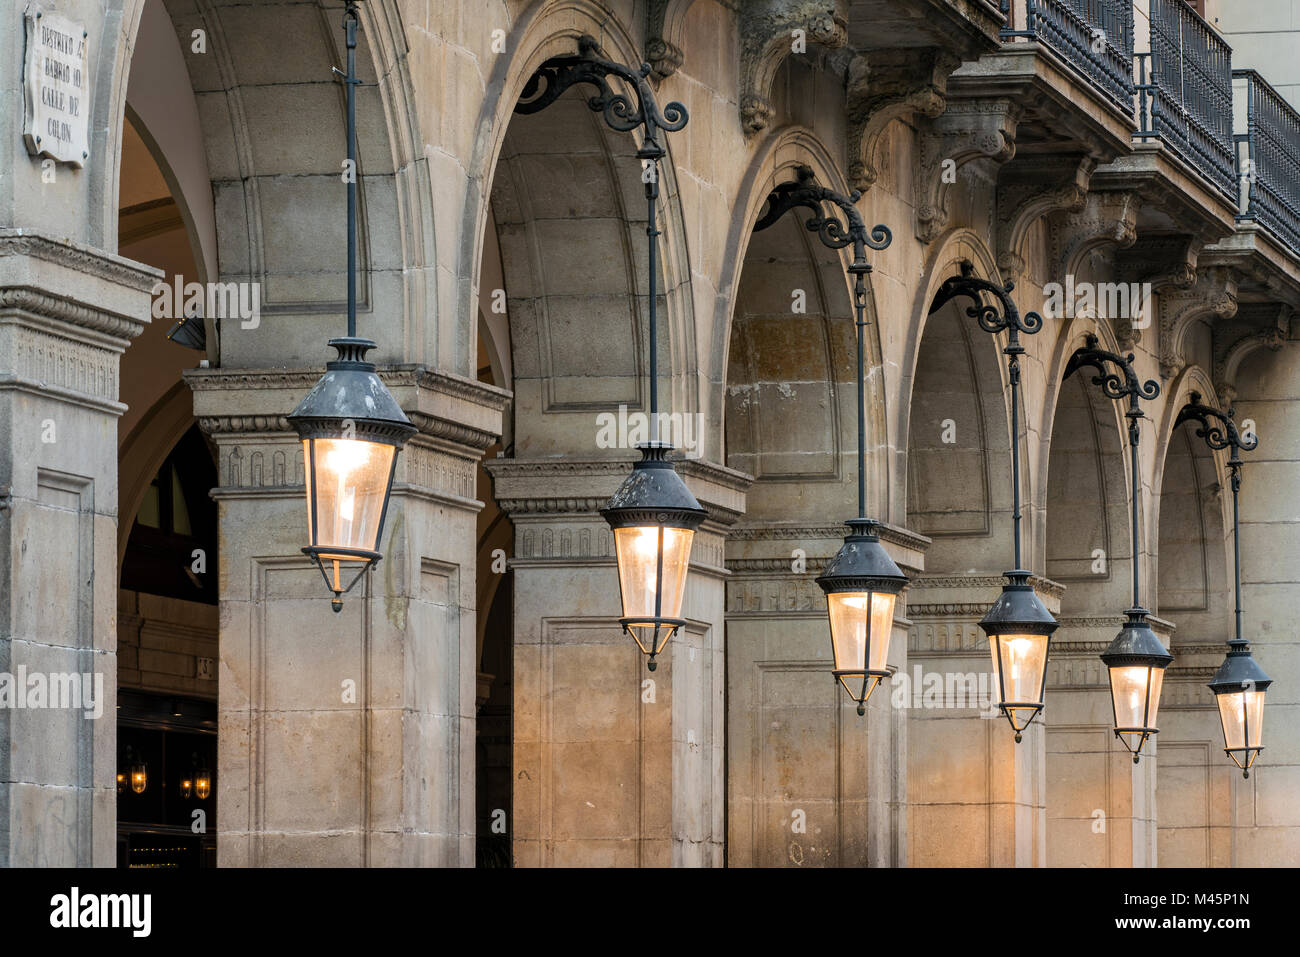 Plaza Real or Placa Reial, Barcelona, Catalonia, Spain - Stock Image